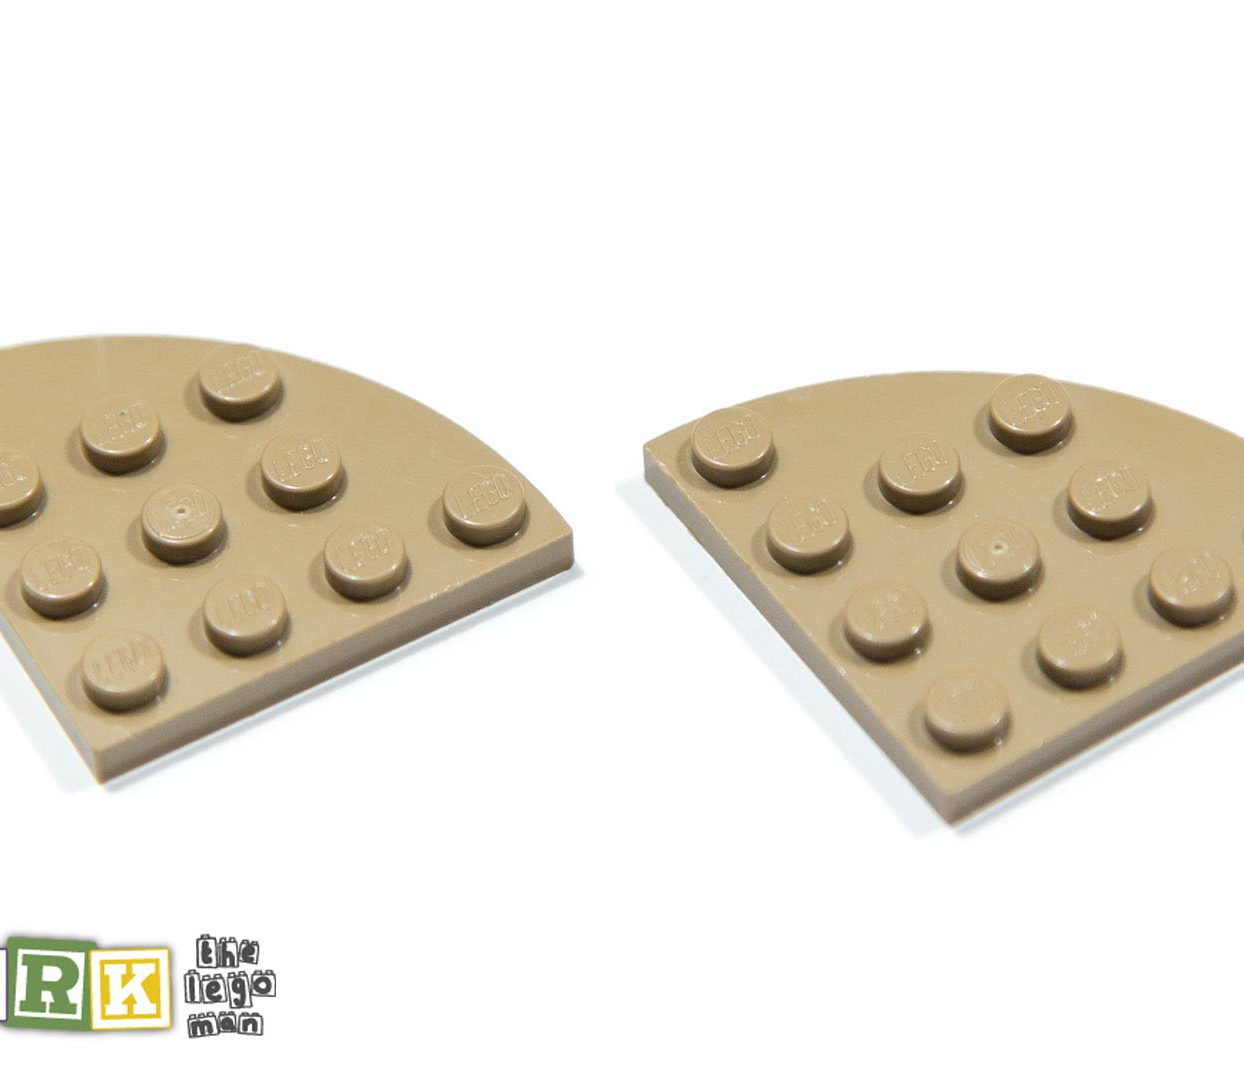 Lego 4505142 30565 2x Sand Yellow 4x4 Plate 1/4 Circle